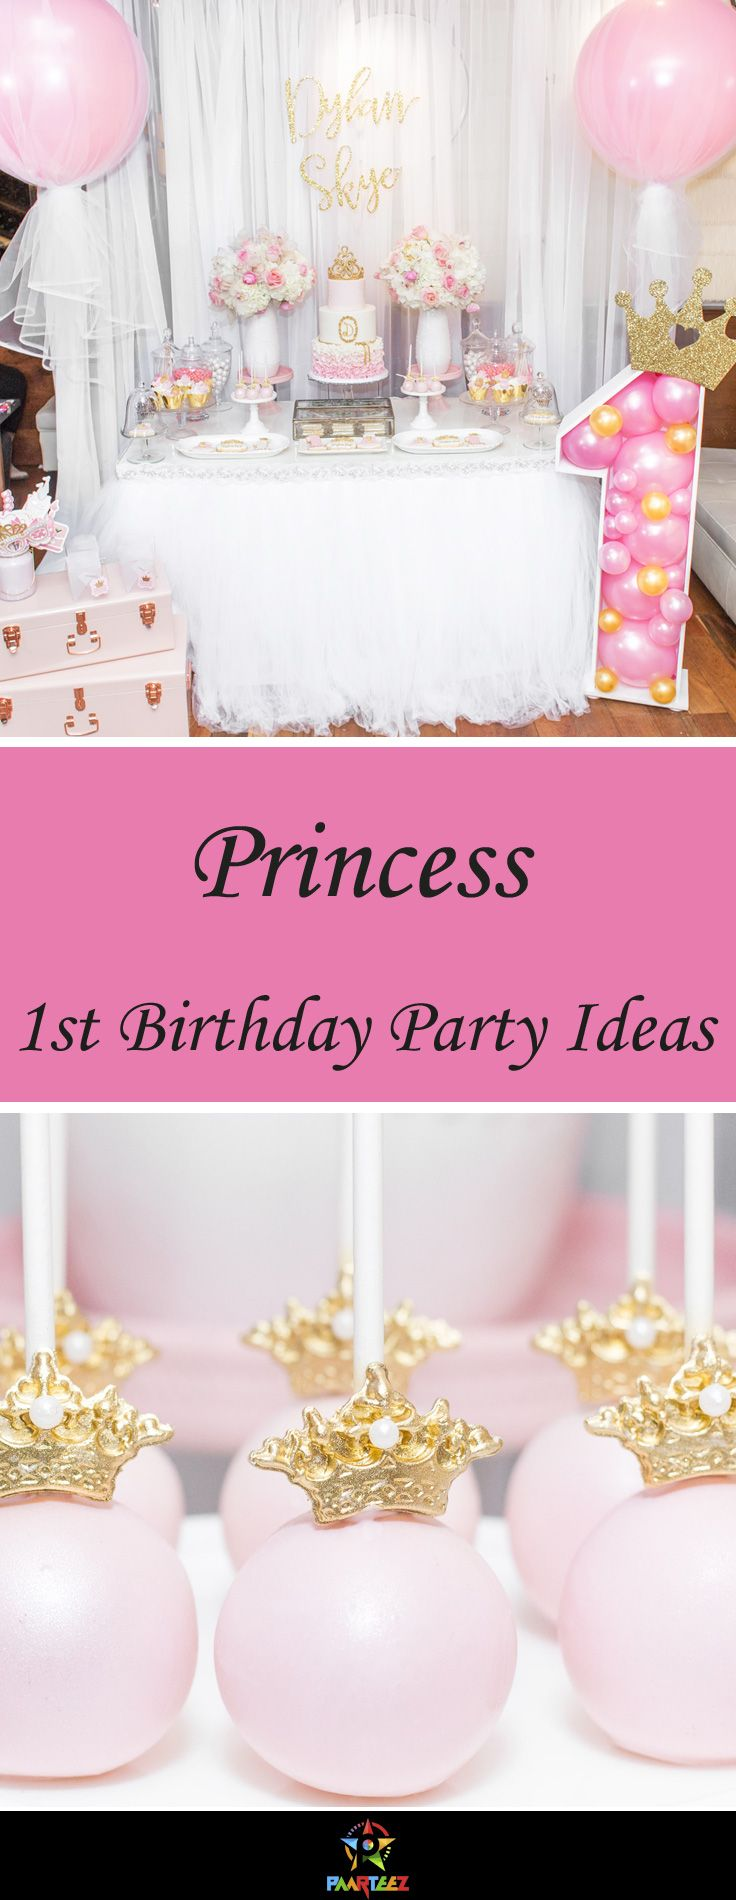 Princess themed first birthday party idea for girls.